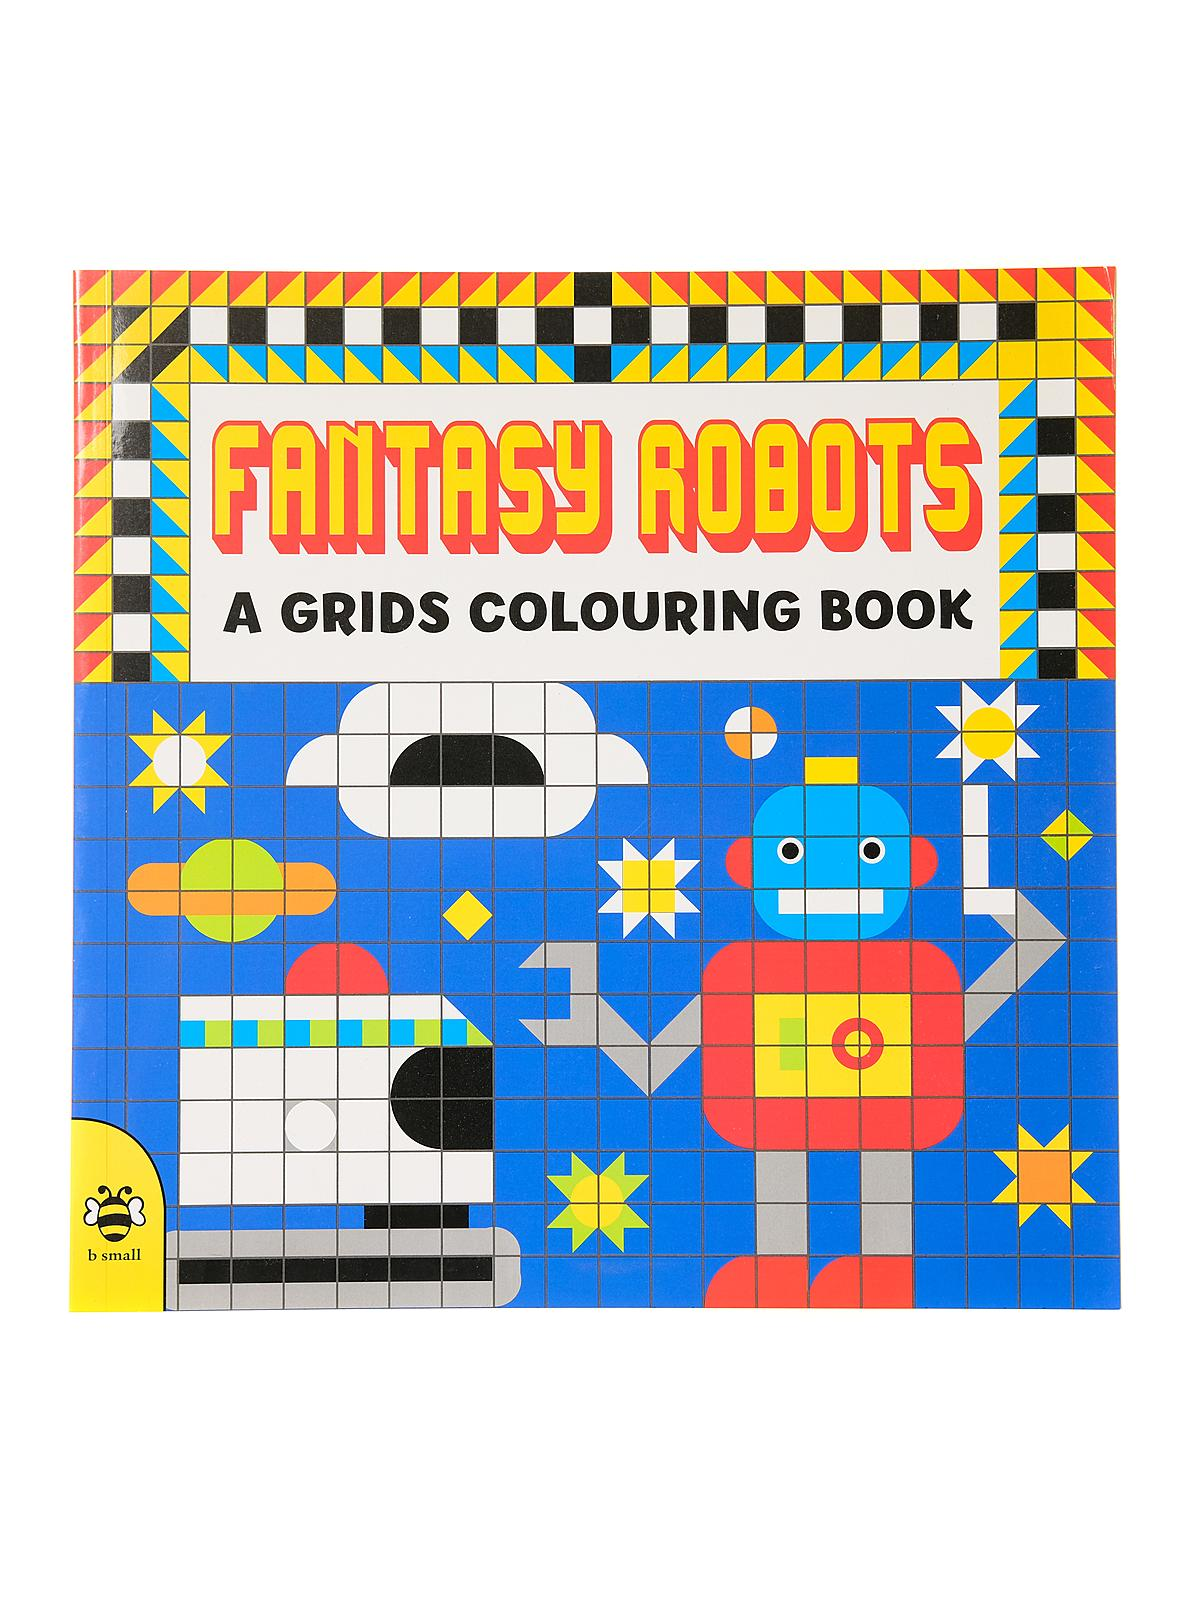 A Grids Colouring Book